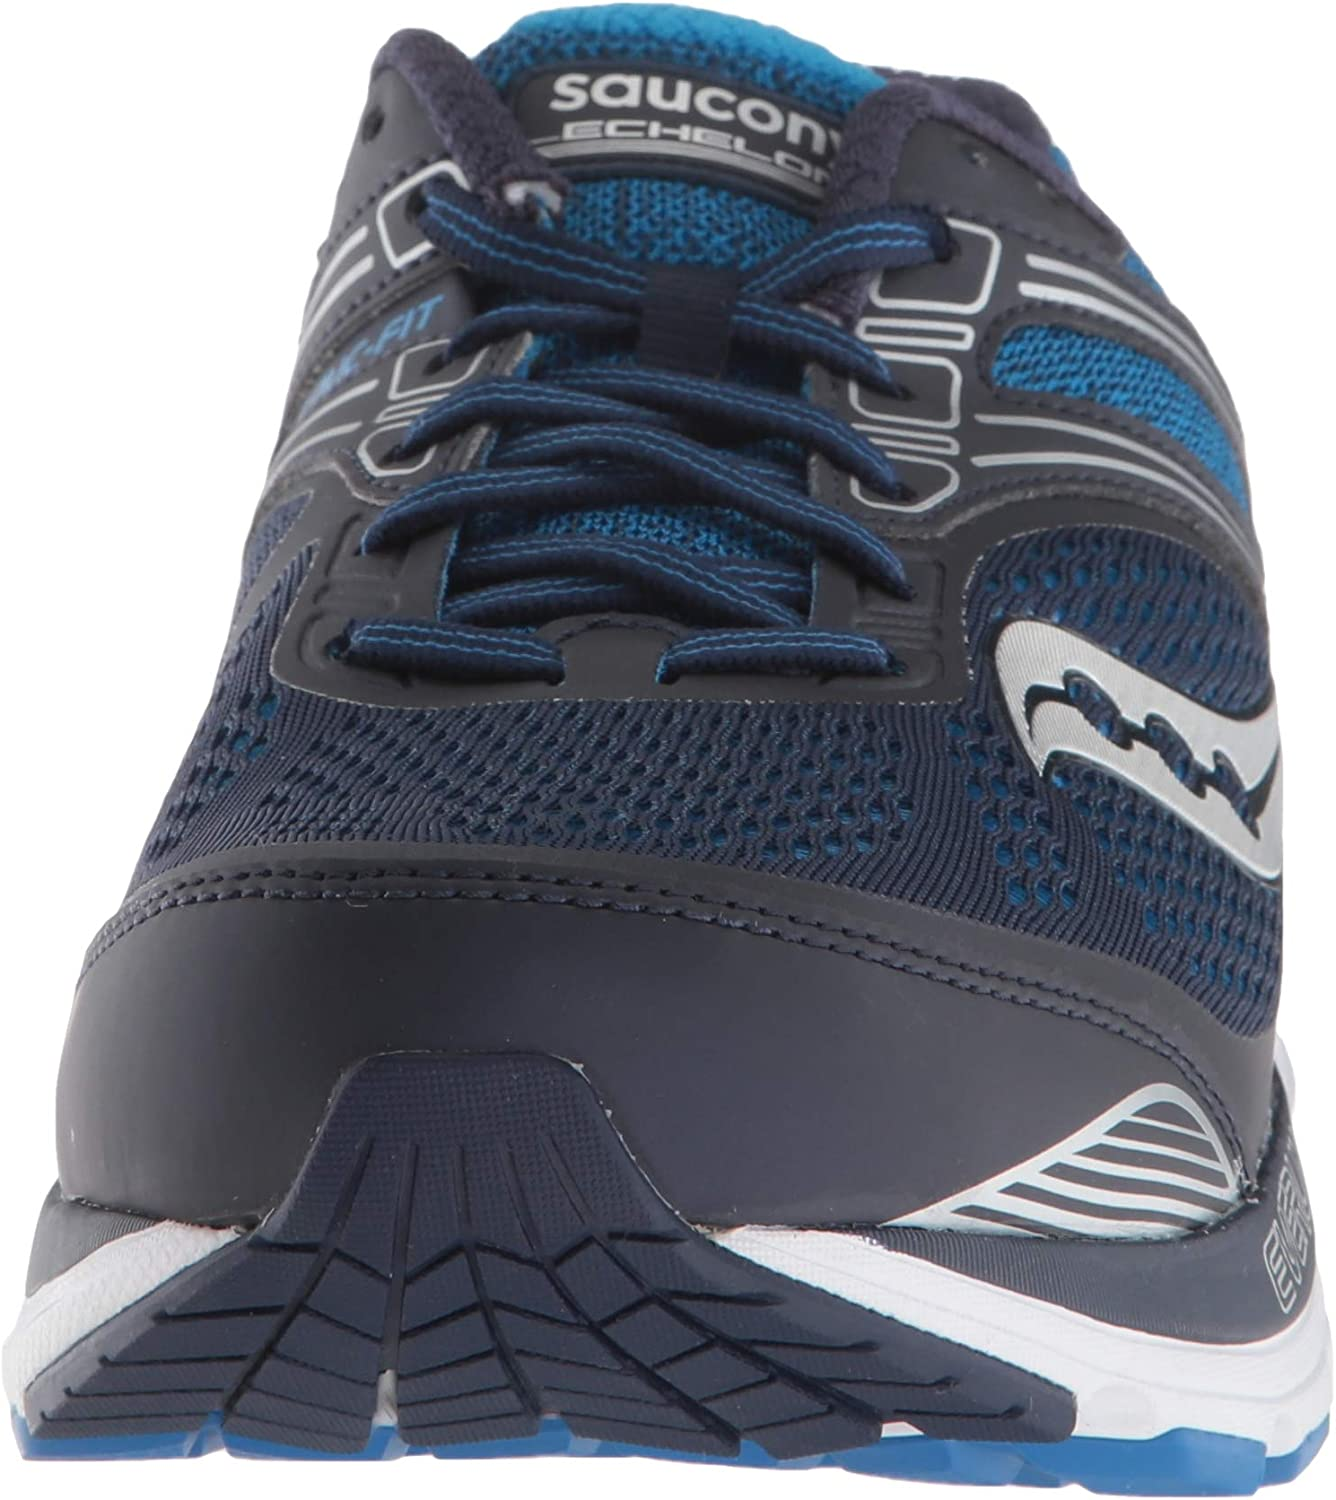 Saucony Men s Echelon 7 Running Shoe